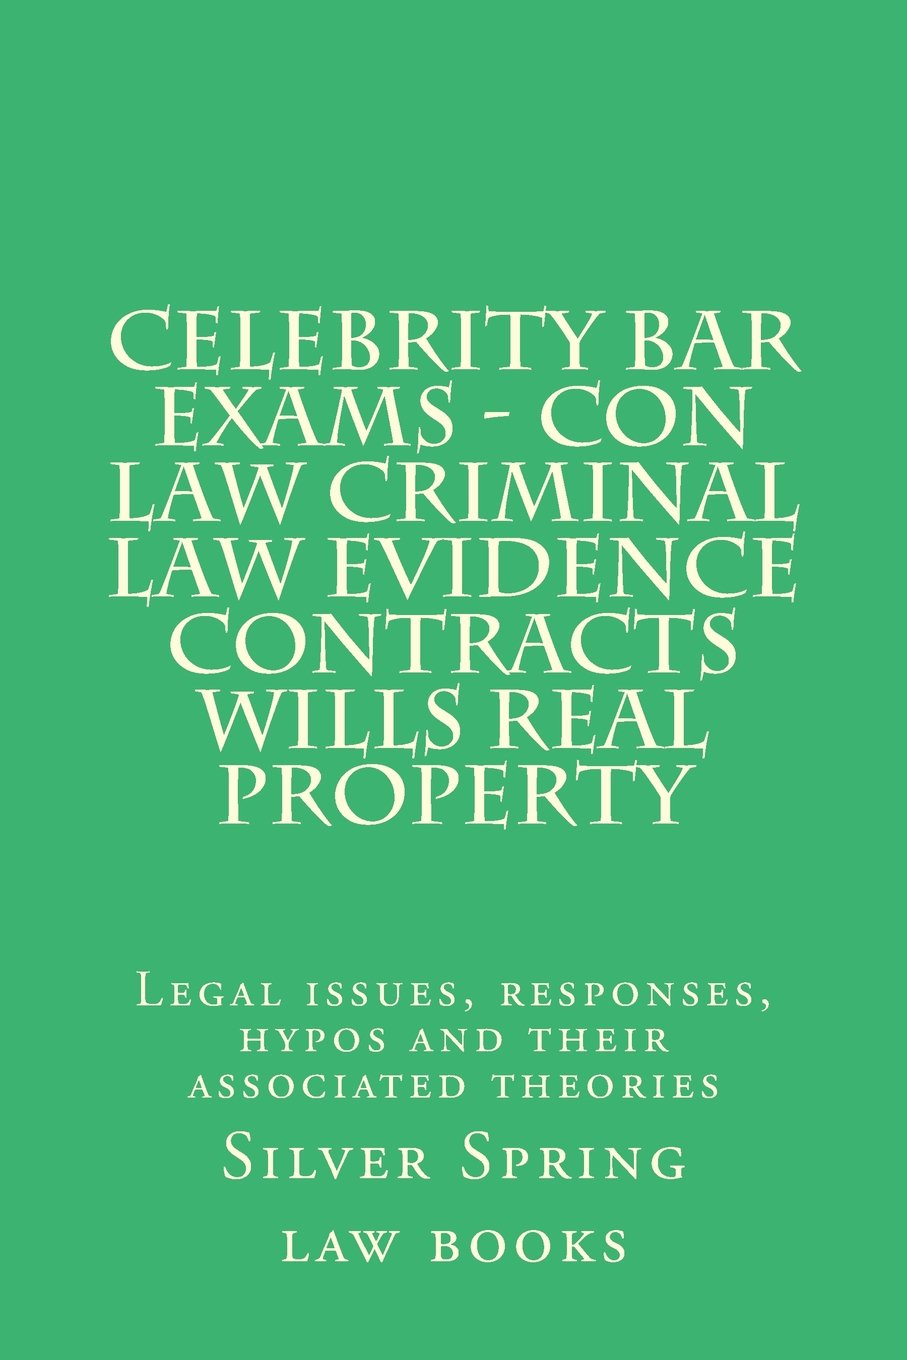 Celebrity Bar Exams - Con law Criminal law Evidence Contracts Wills Real Property: Legal issues, responses, hypos and their associated theories ebook